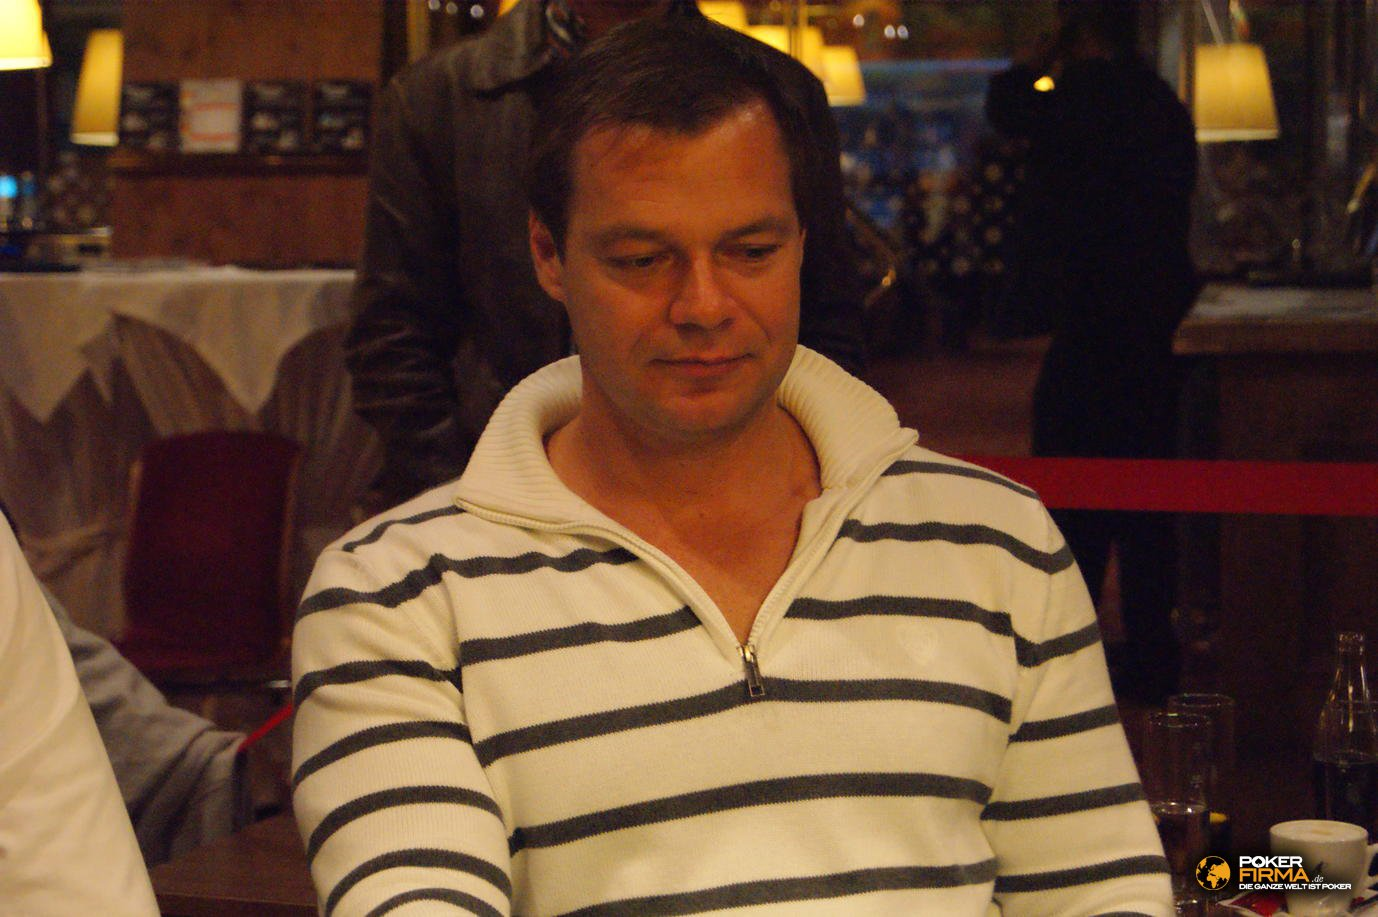 Mountain_Poker_Party_1500_NLH_FT_081011_Andreas_Krause